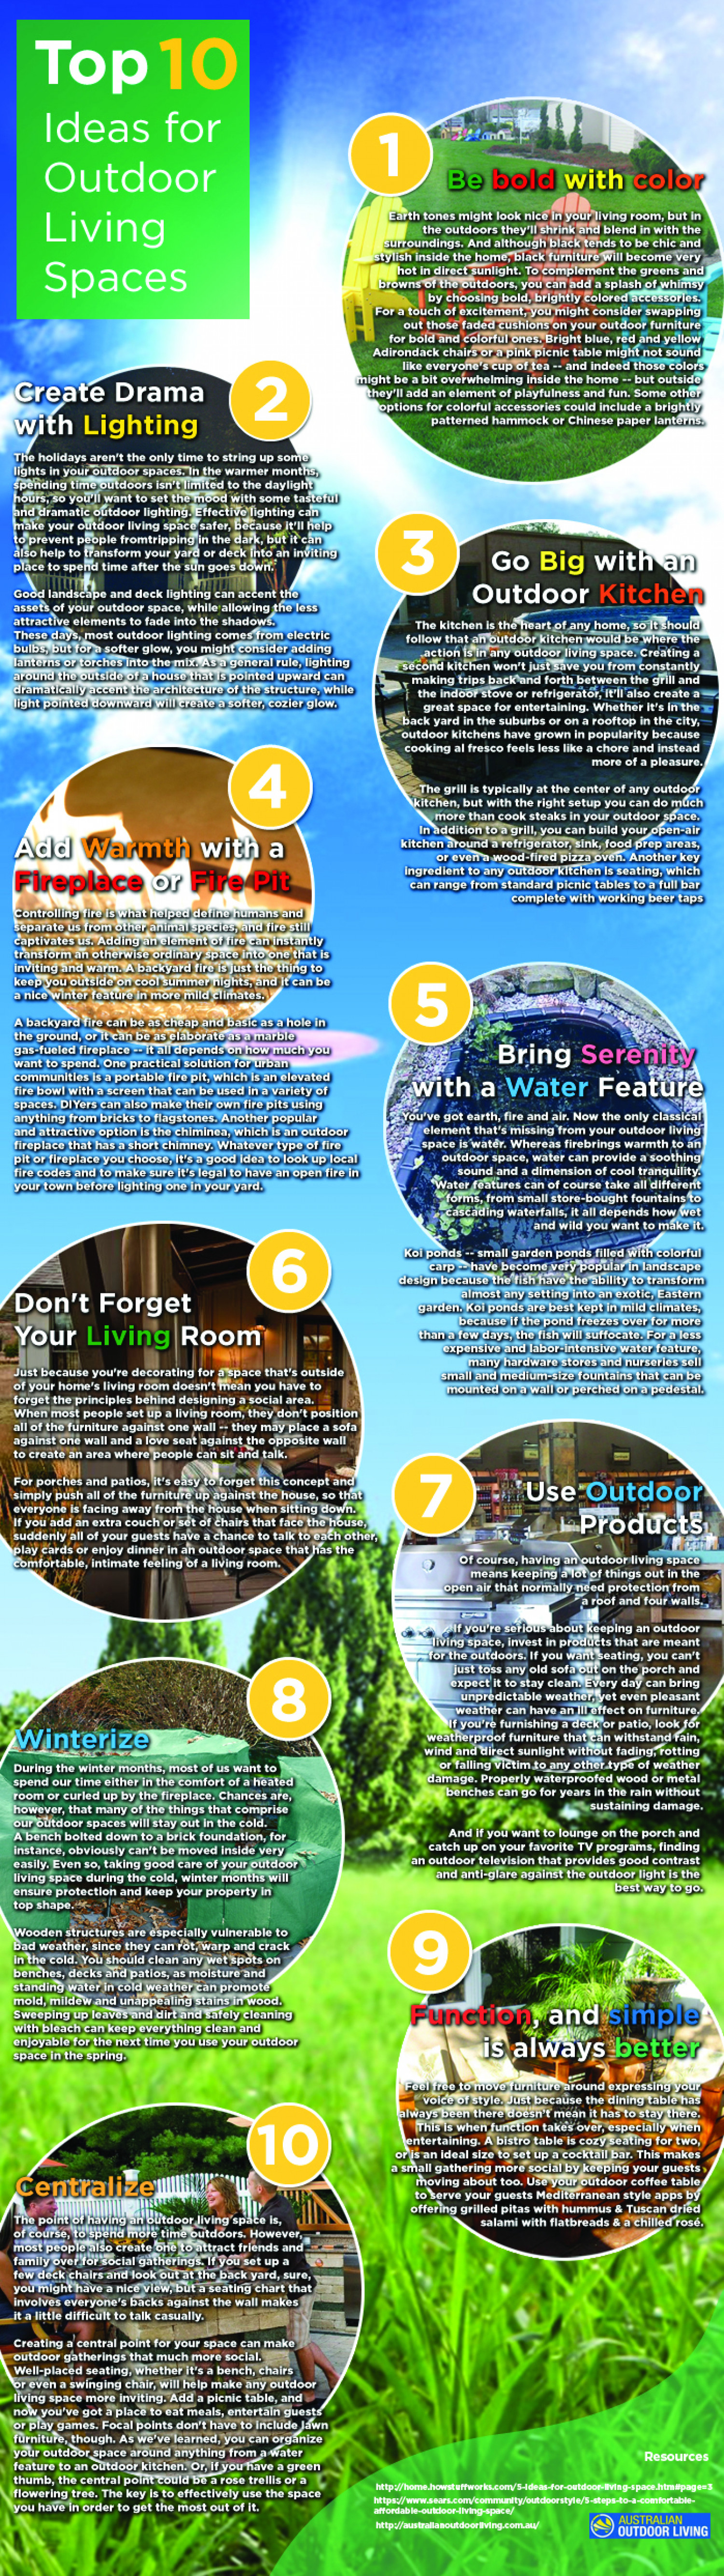 Top 10 Ideas for Outdoor Living Spaces Infographic